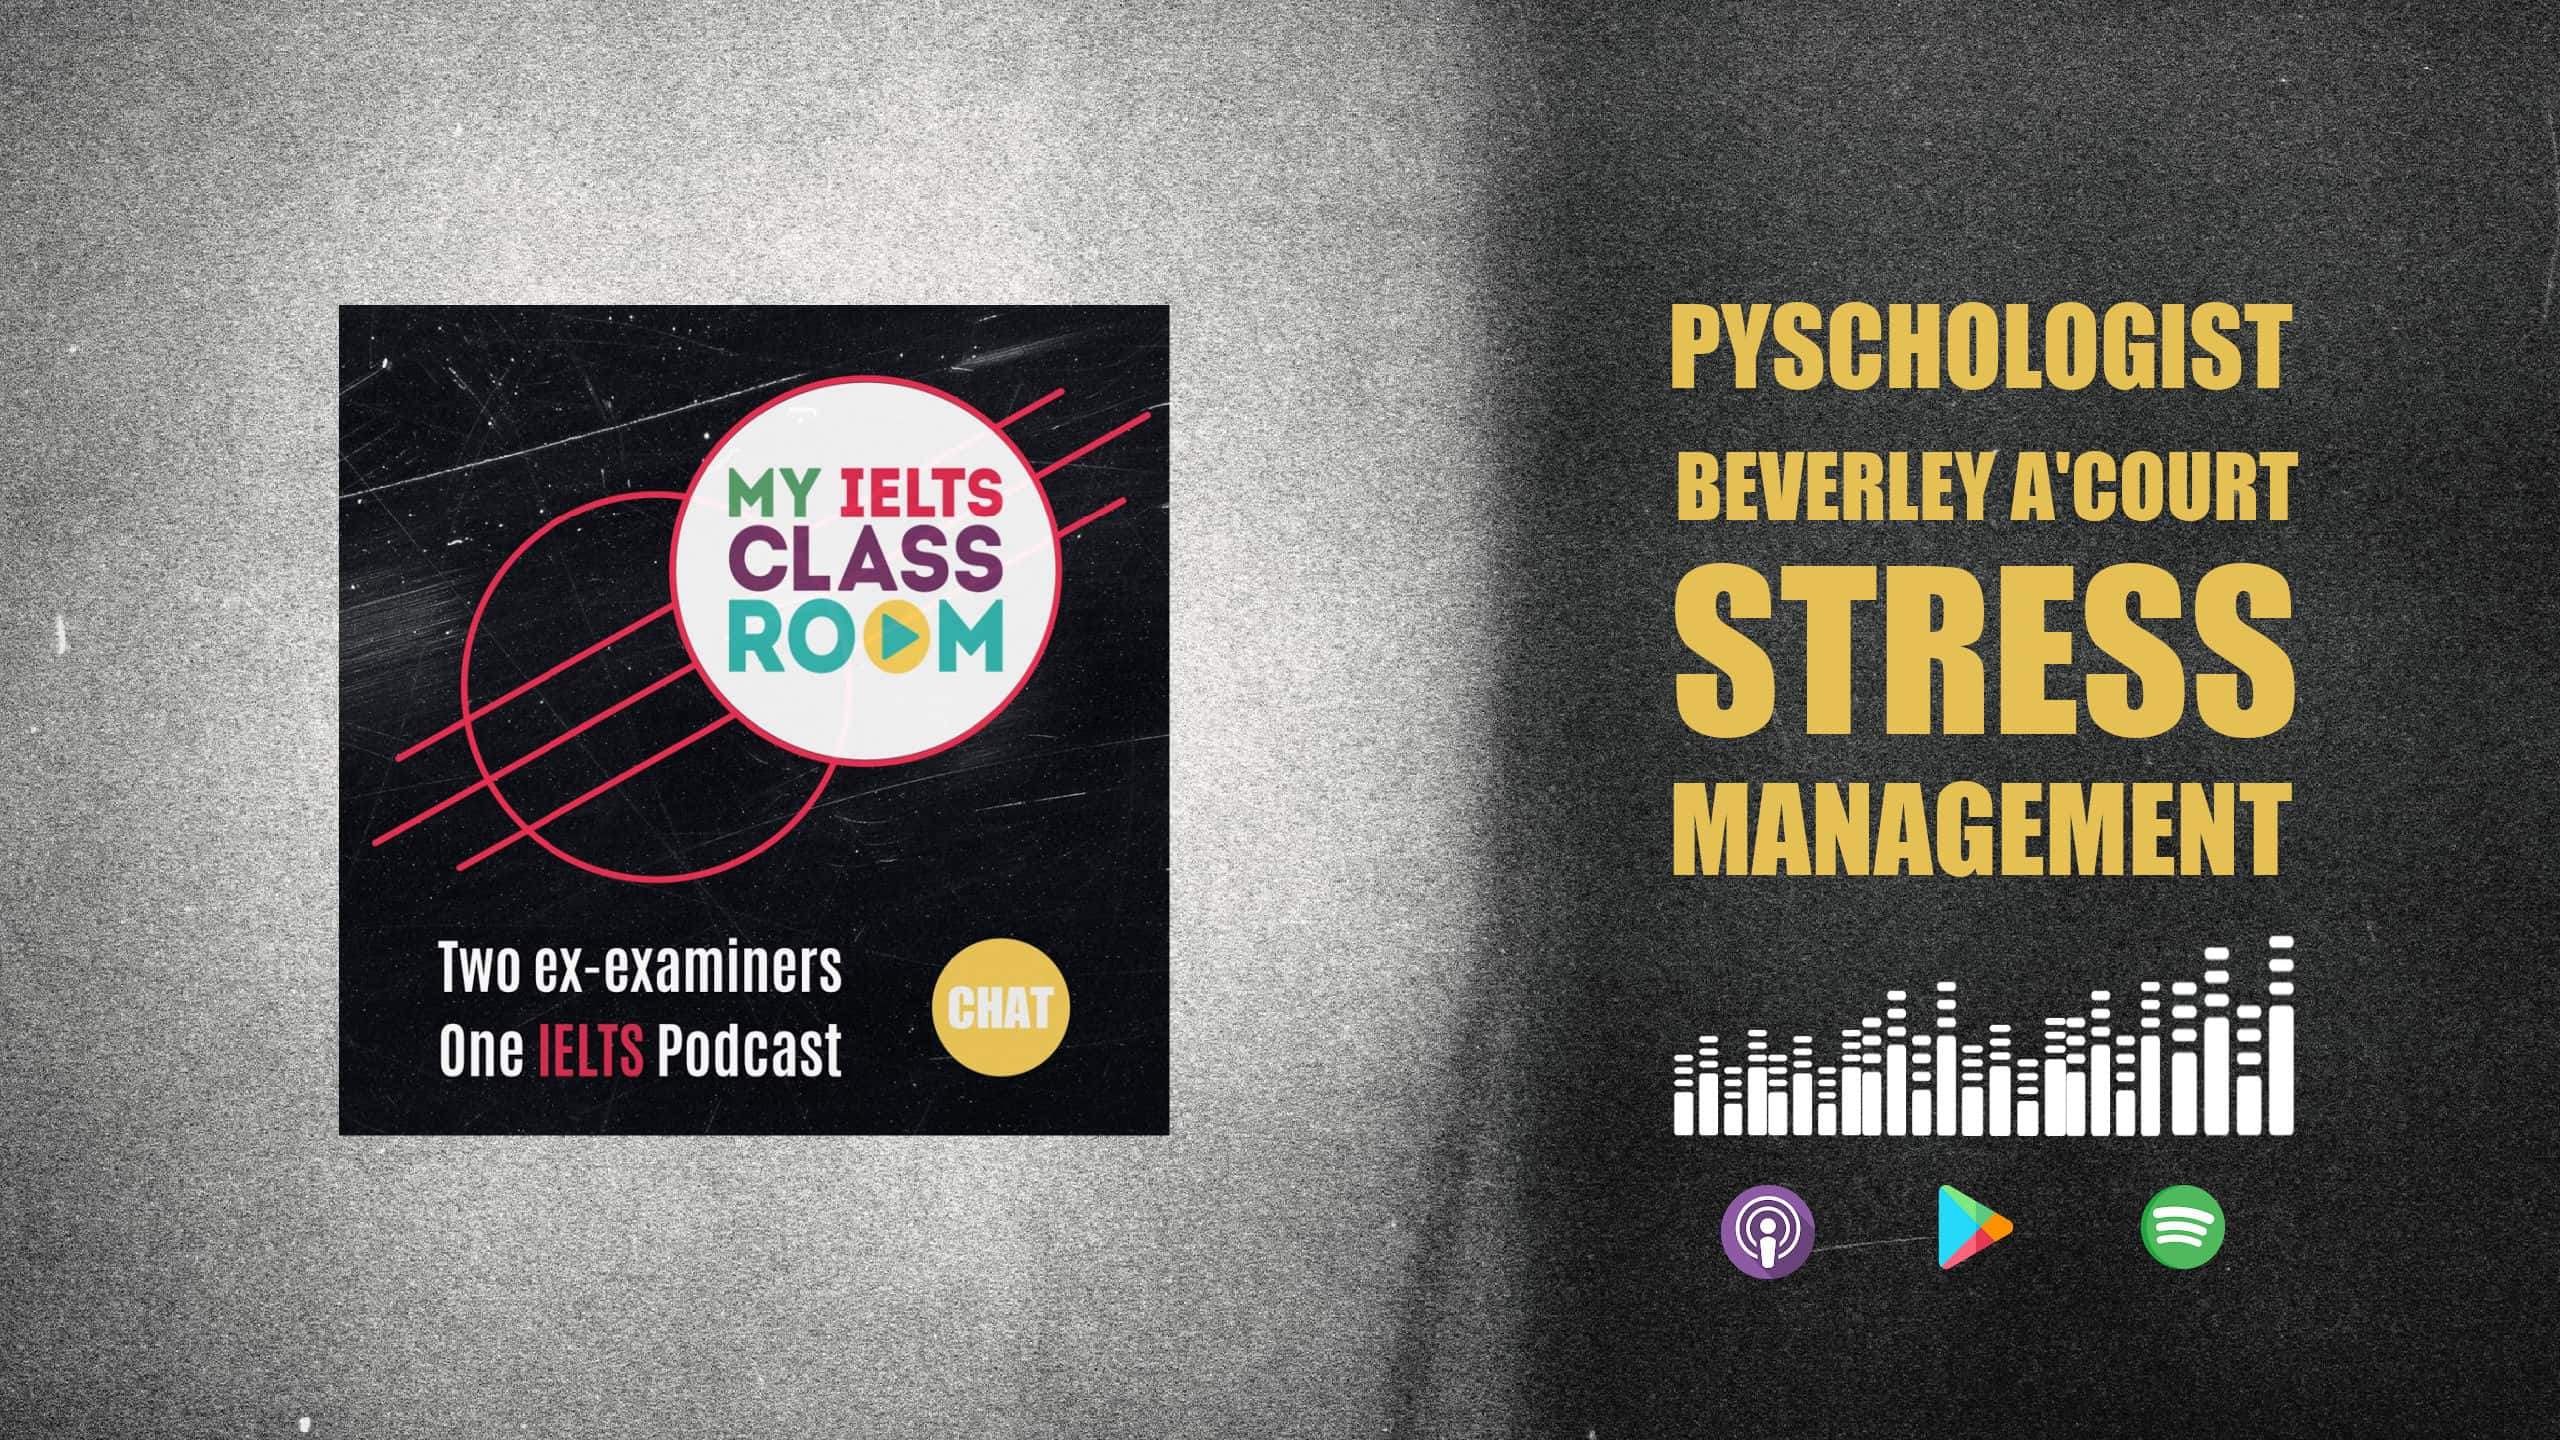 A graphic image of a podcast album cover next to the words Psychologist Beverley A'curt advises on IELTS stress management